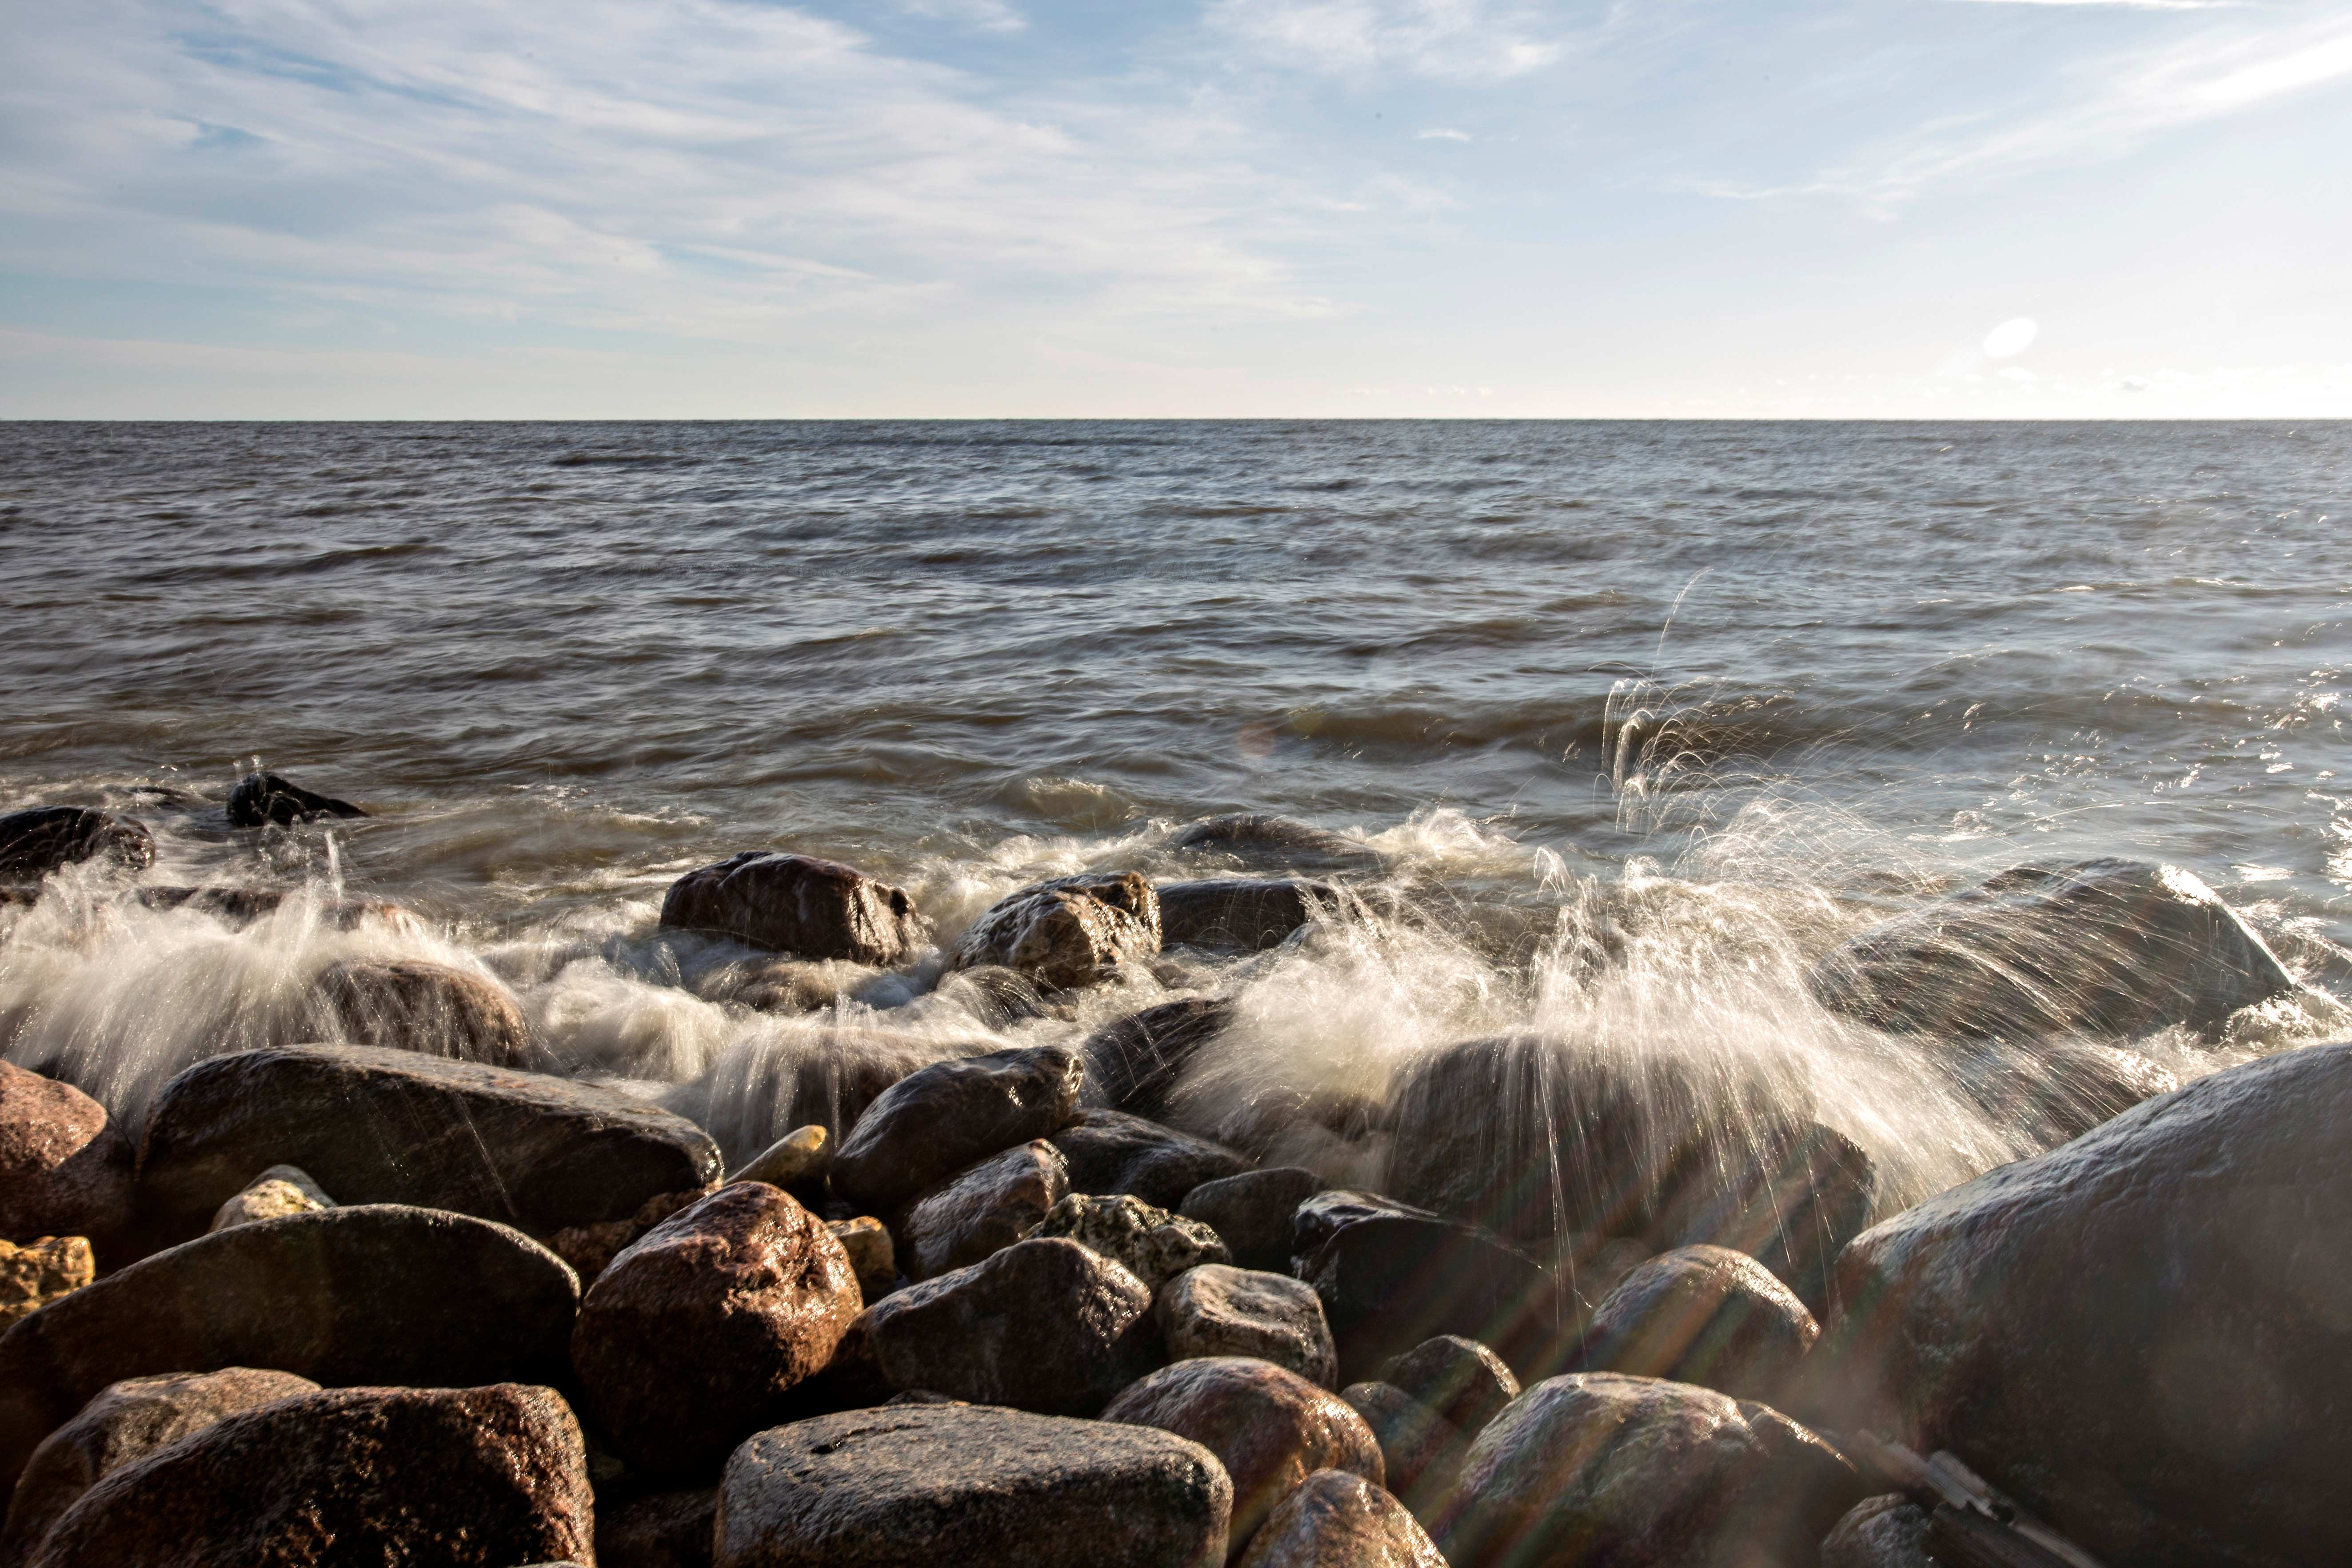 Water splashes over rocks at the shore of Lake Winnipeg.